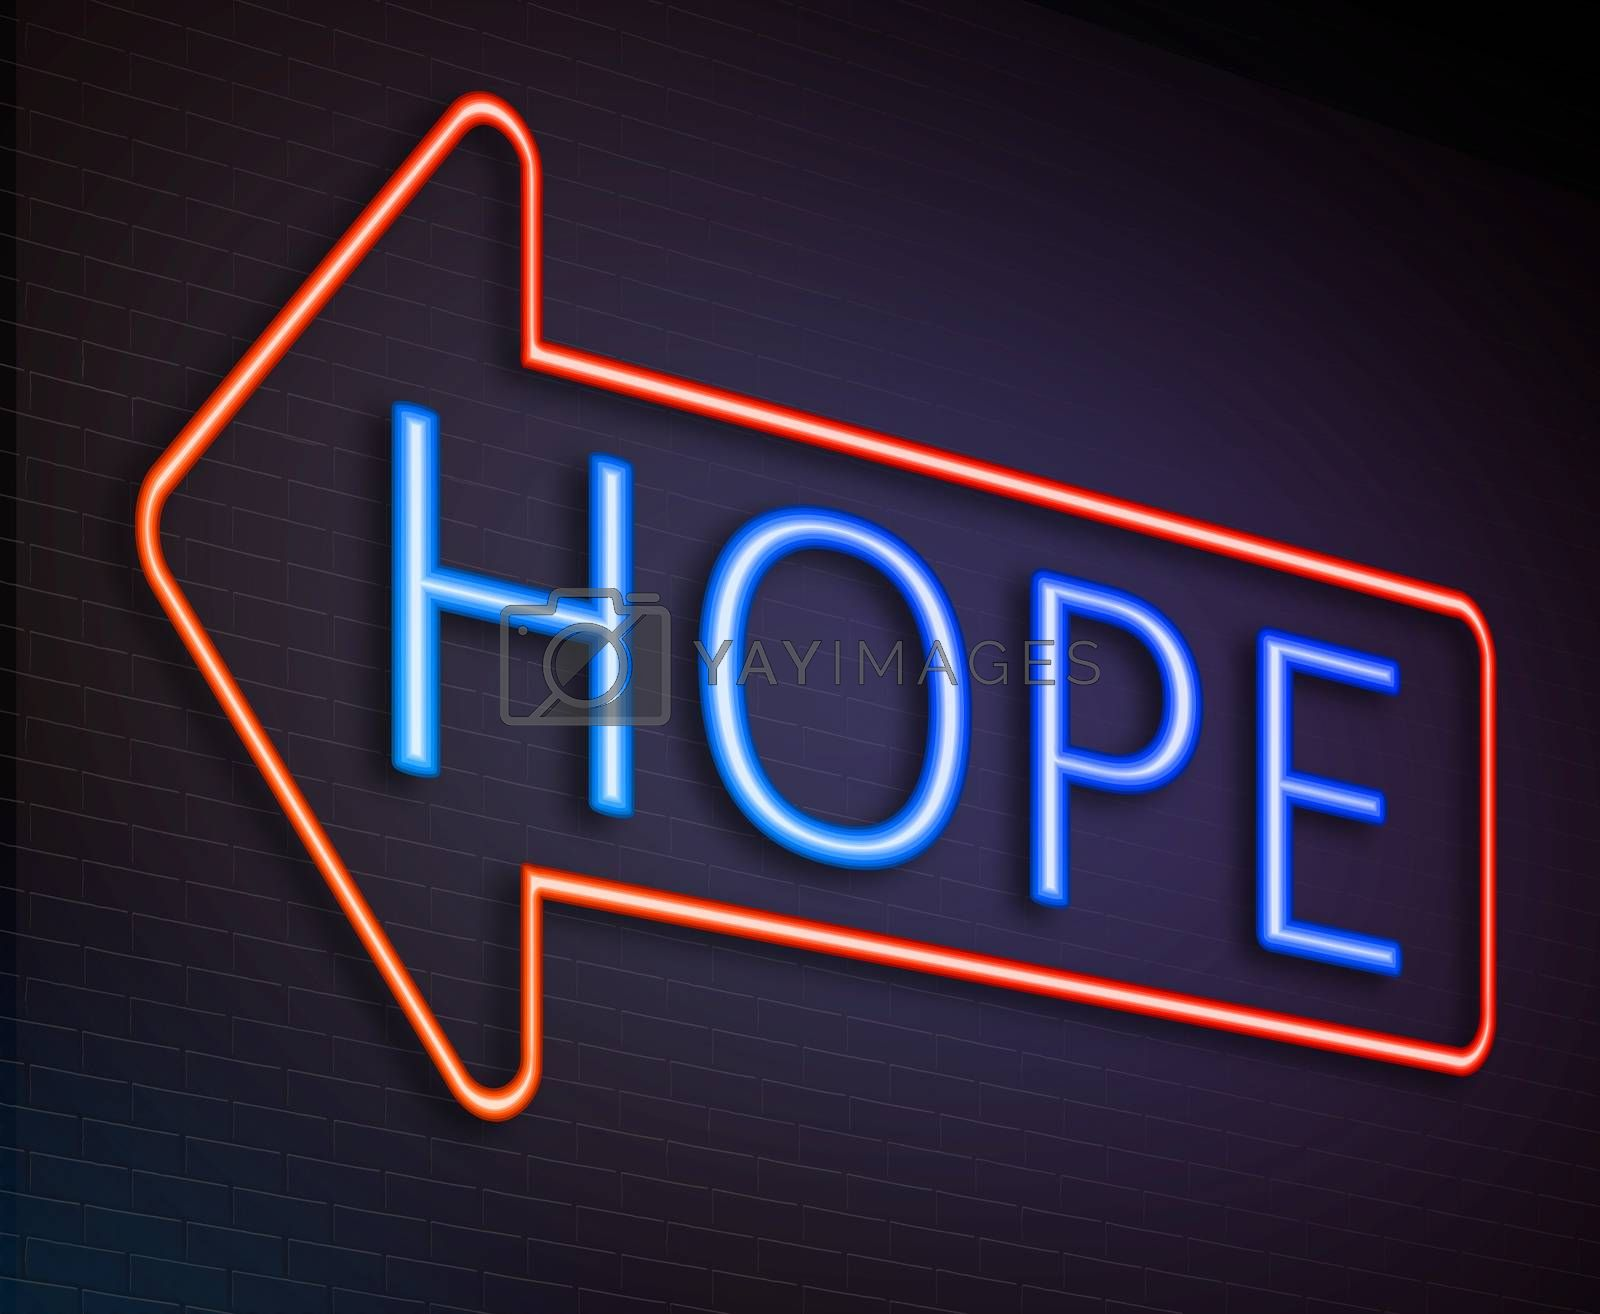 Illustration depicting an illuminated neon sign with a hope concept.